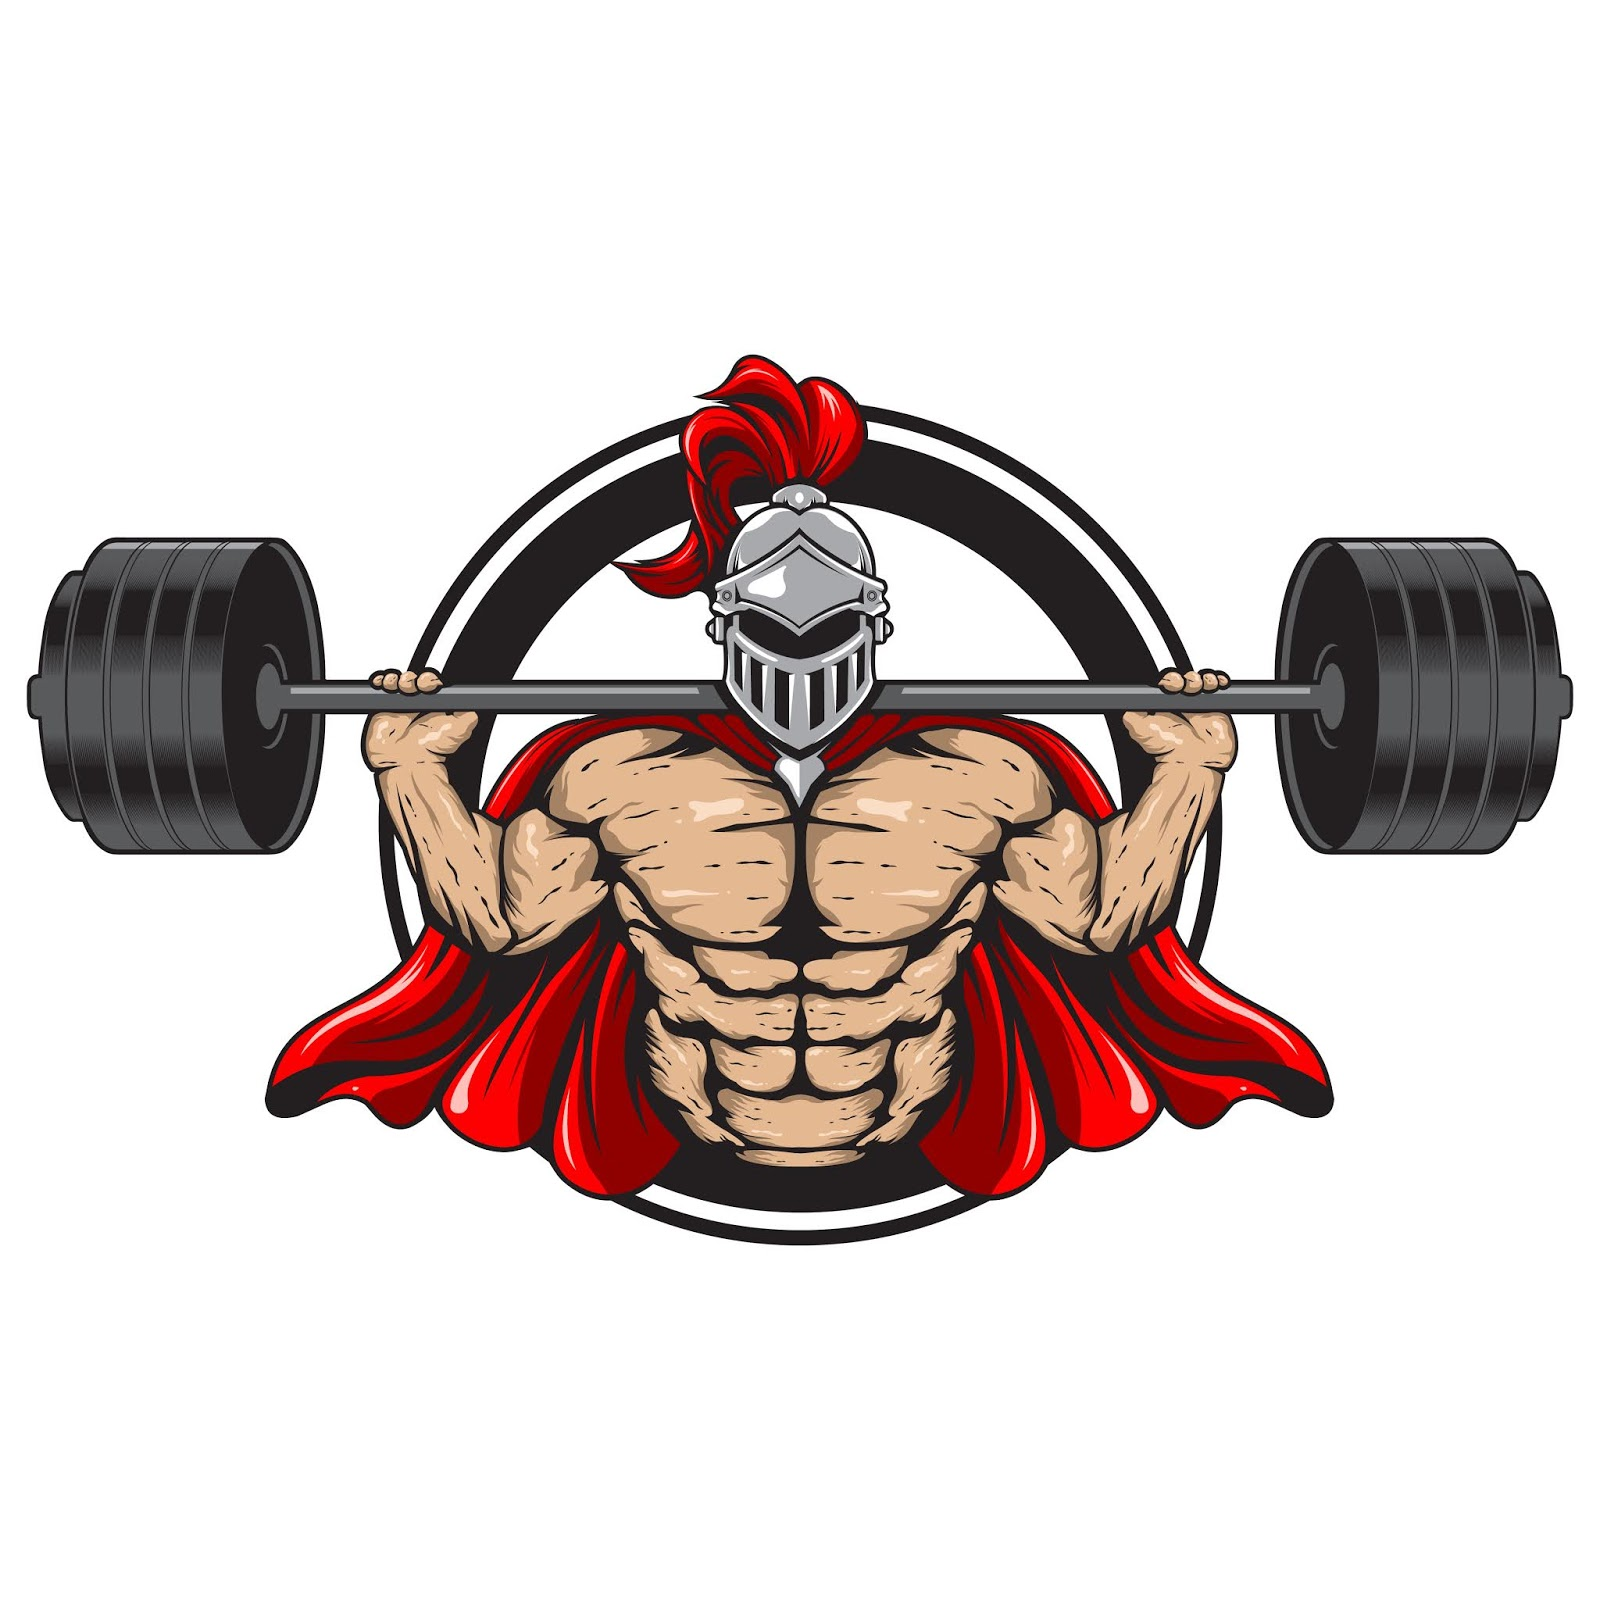 Fitness Spartan Illustration Free Download Vector CDR, AI, EPS and PNG Formats